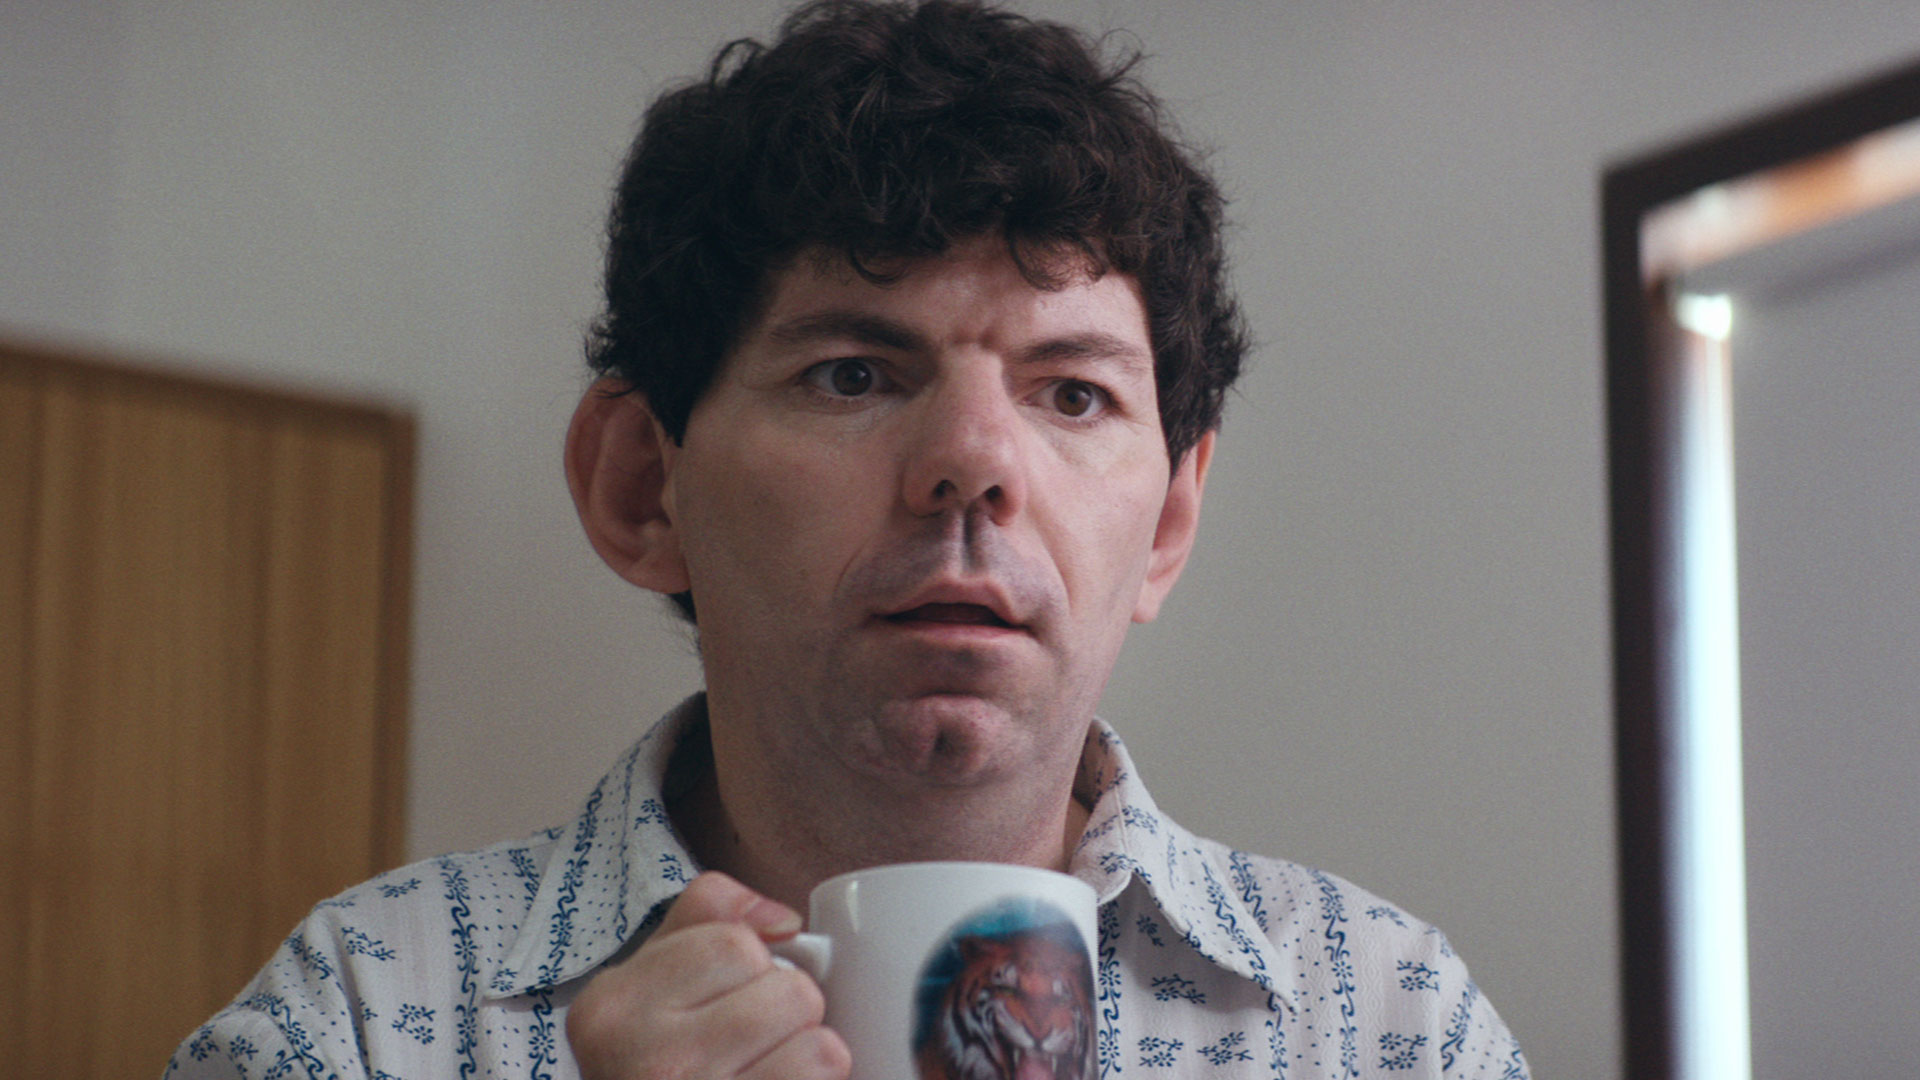 A Man holding a cup